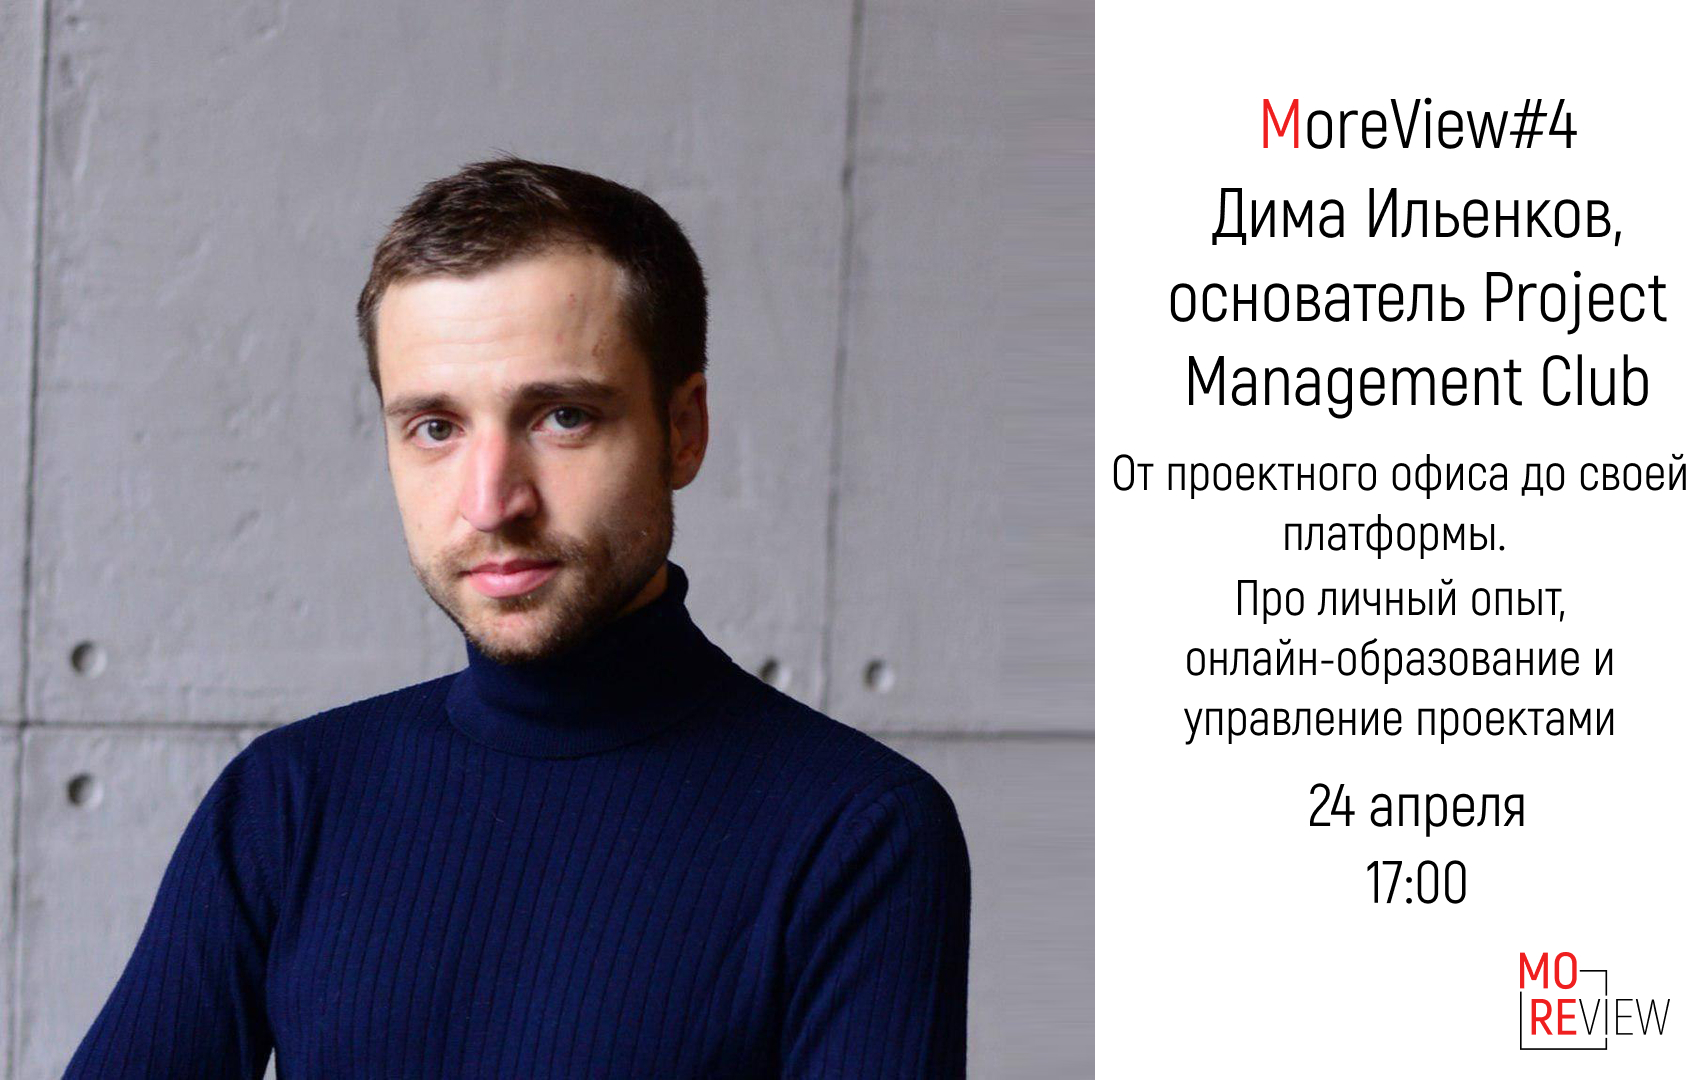 MoreView #4 | Дмитрий Ильенков – основатель Project Management Club